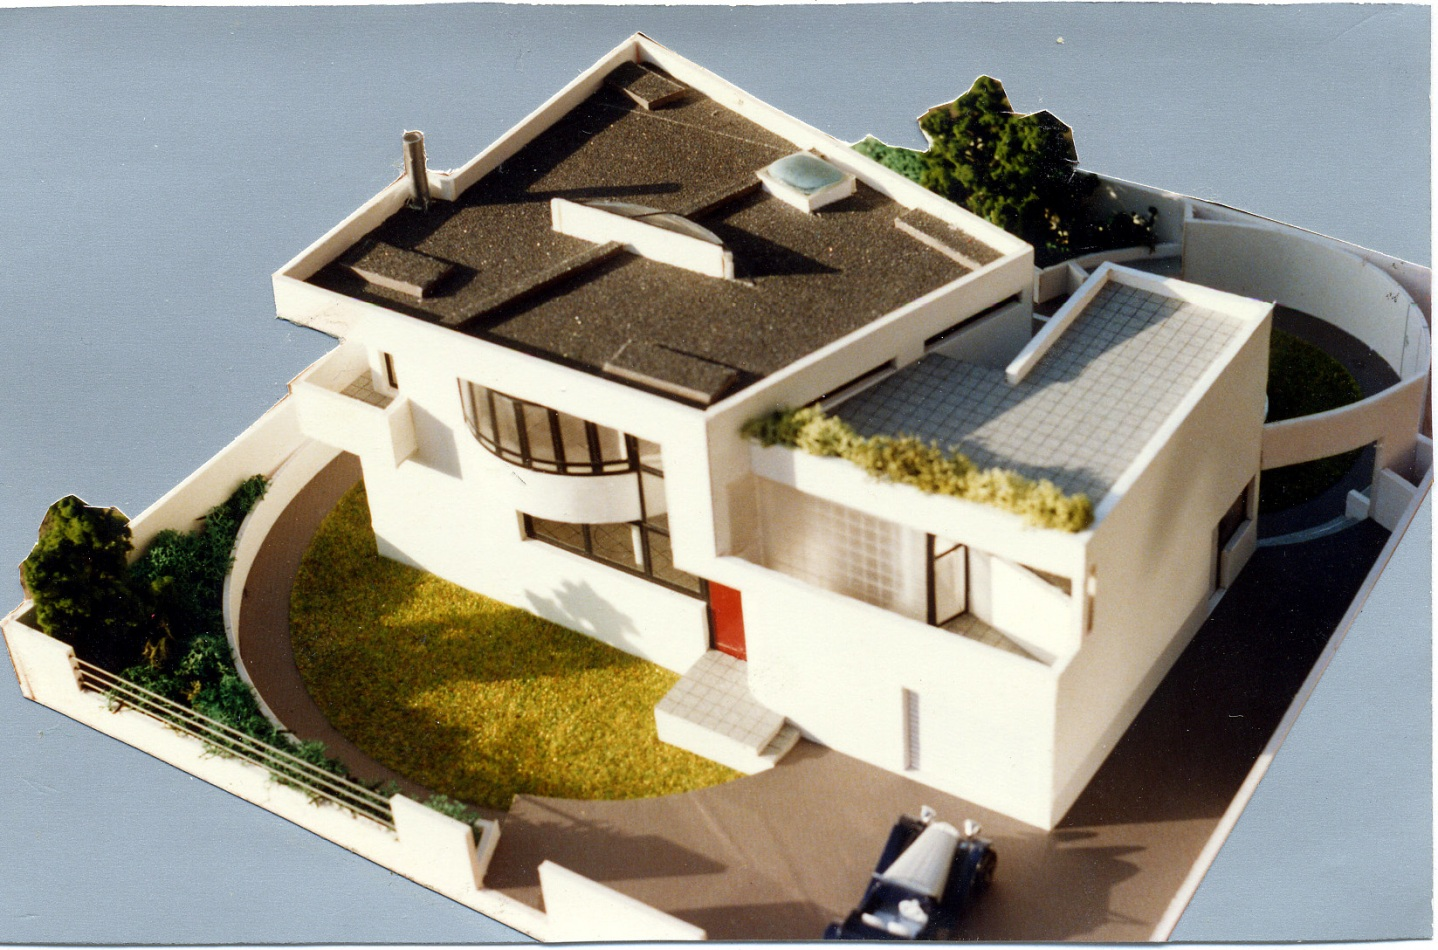 Villa pallisco vitry val de marne denis humbert for Comment concevoir mes propres plans de maison